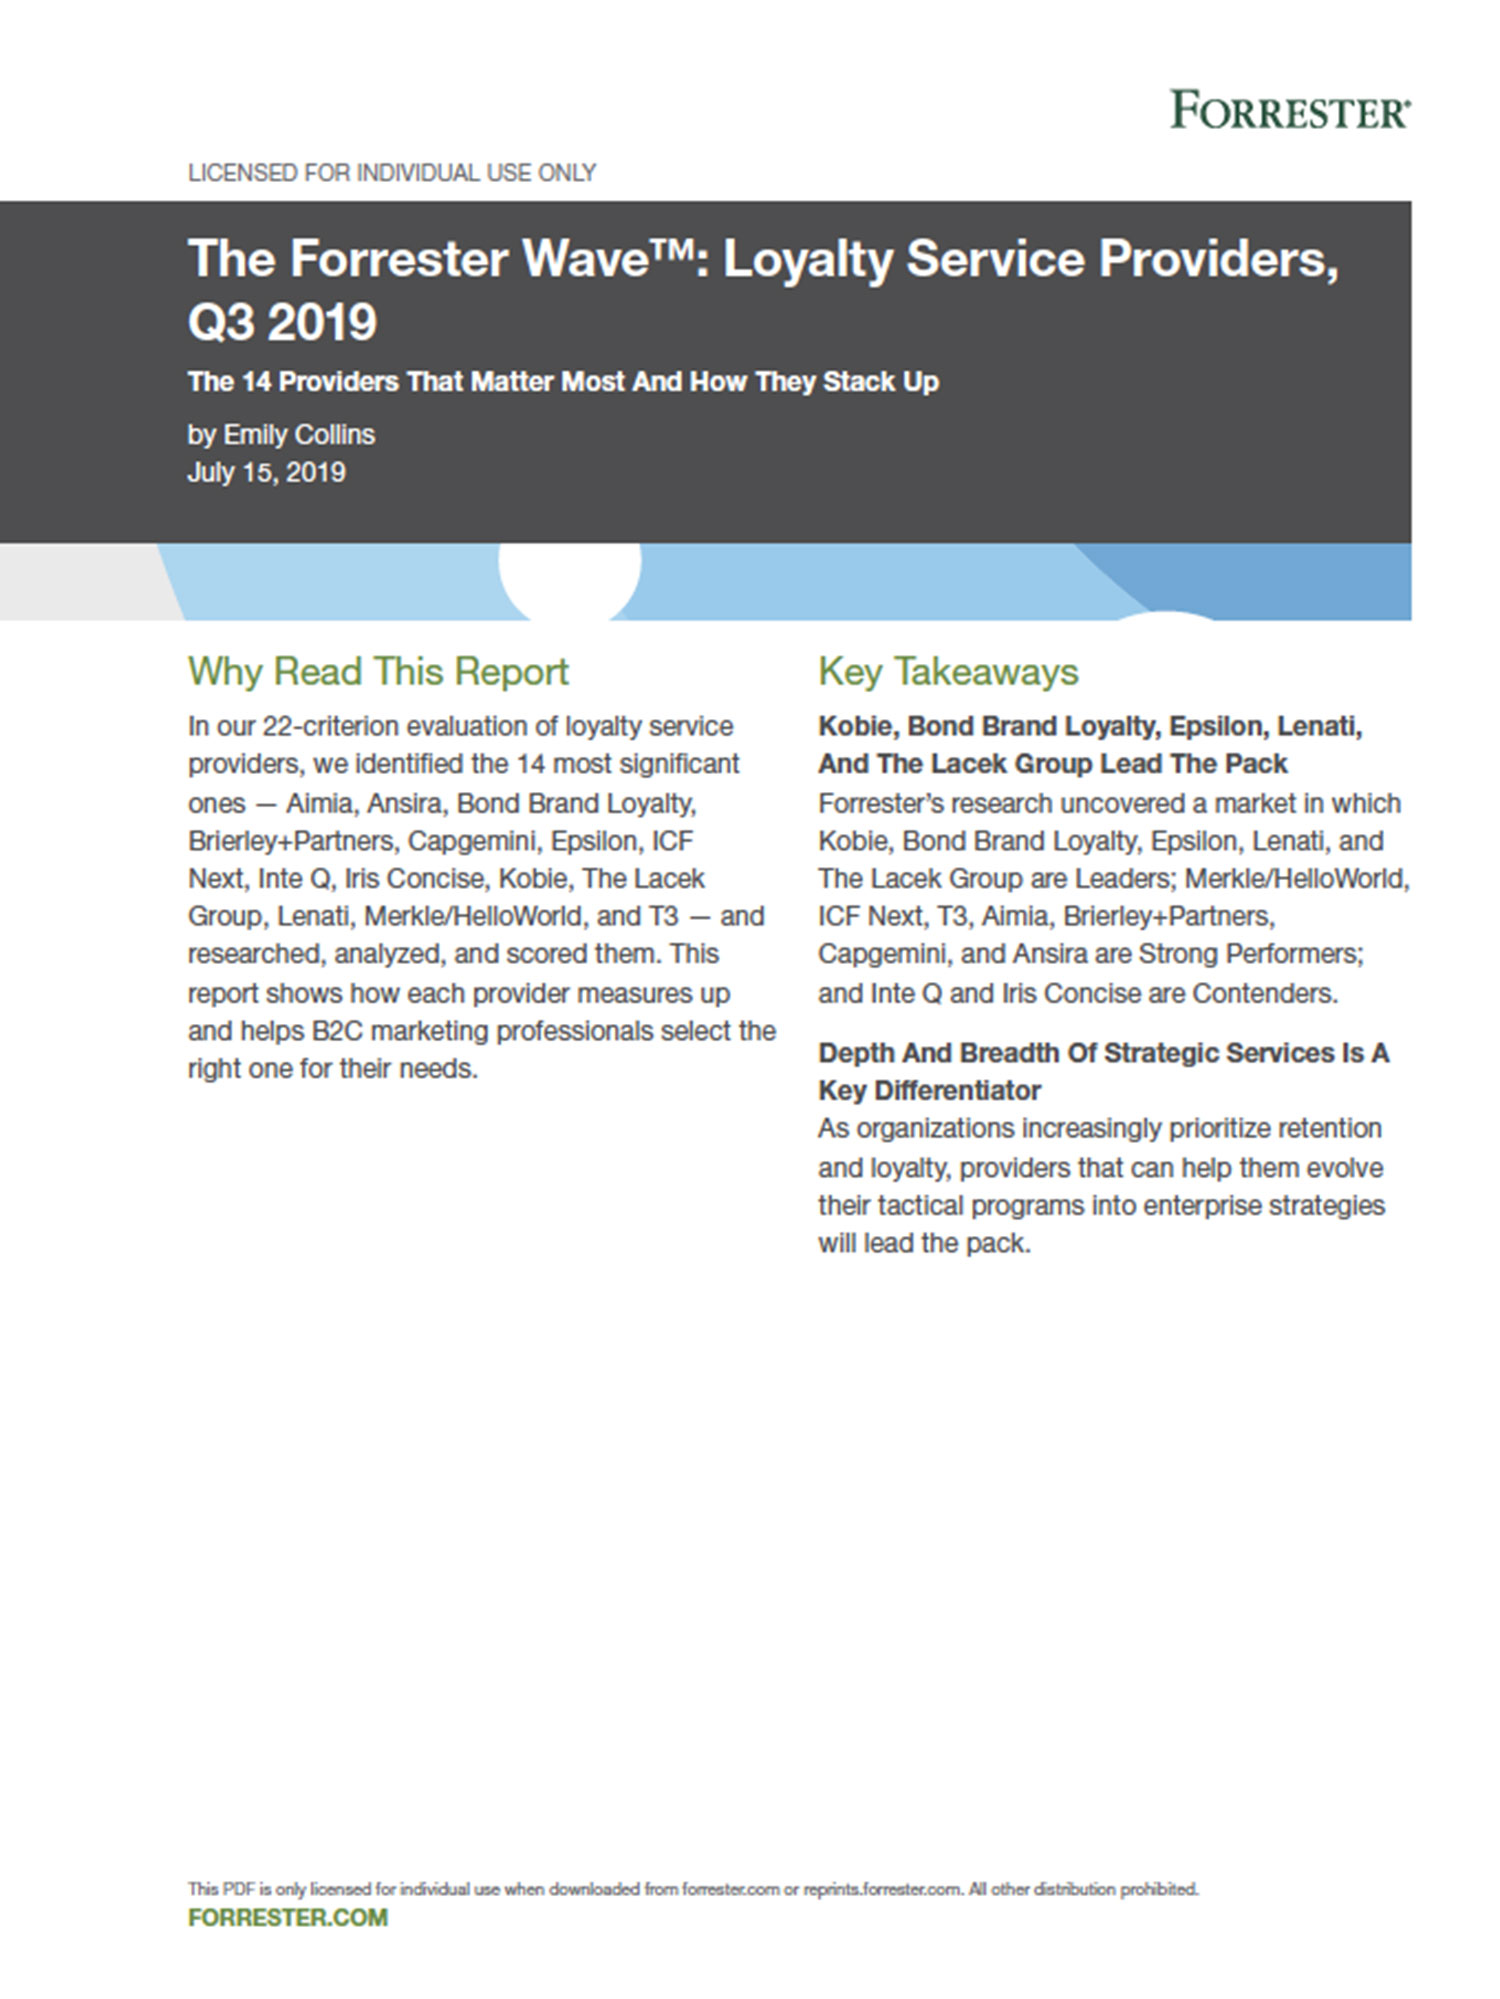 The Forrester Wave™: Loyalty Service Providers, Q3 2019 - cover